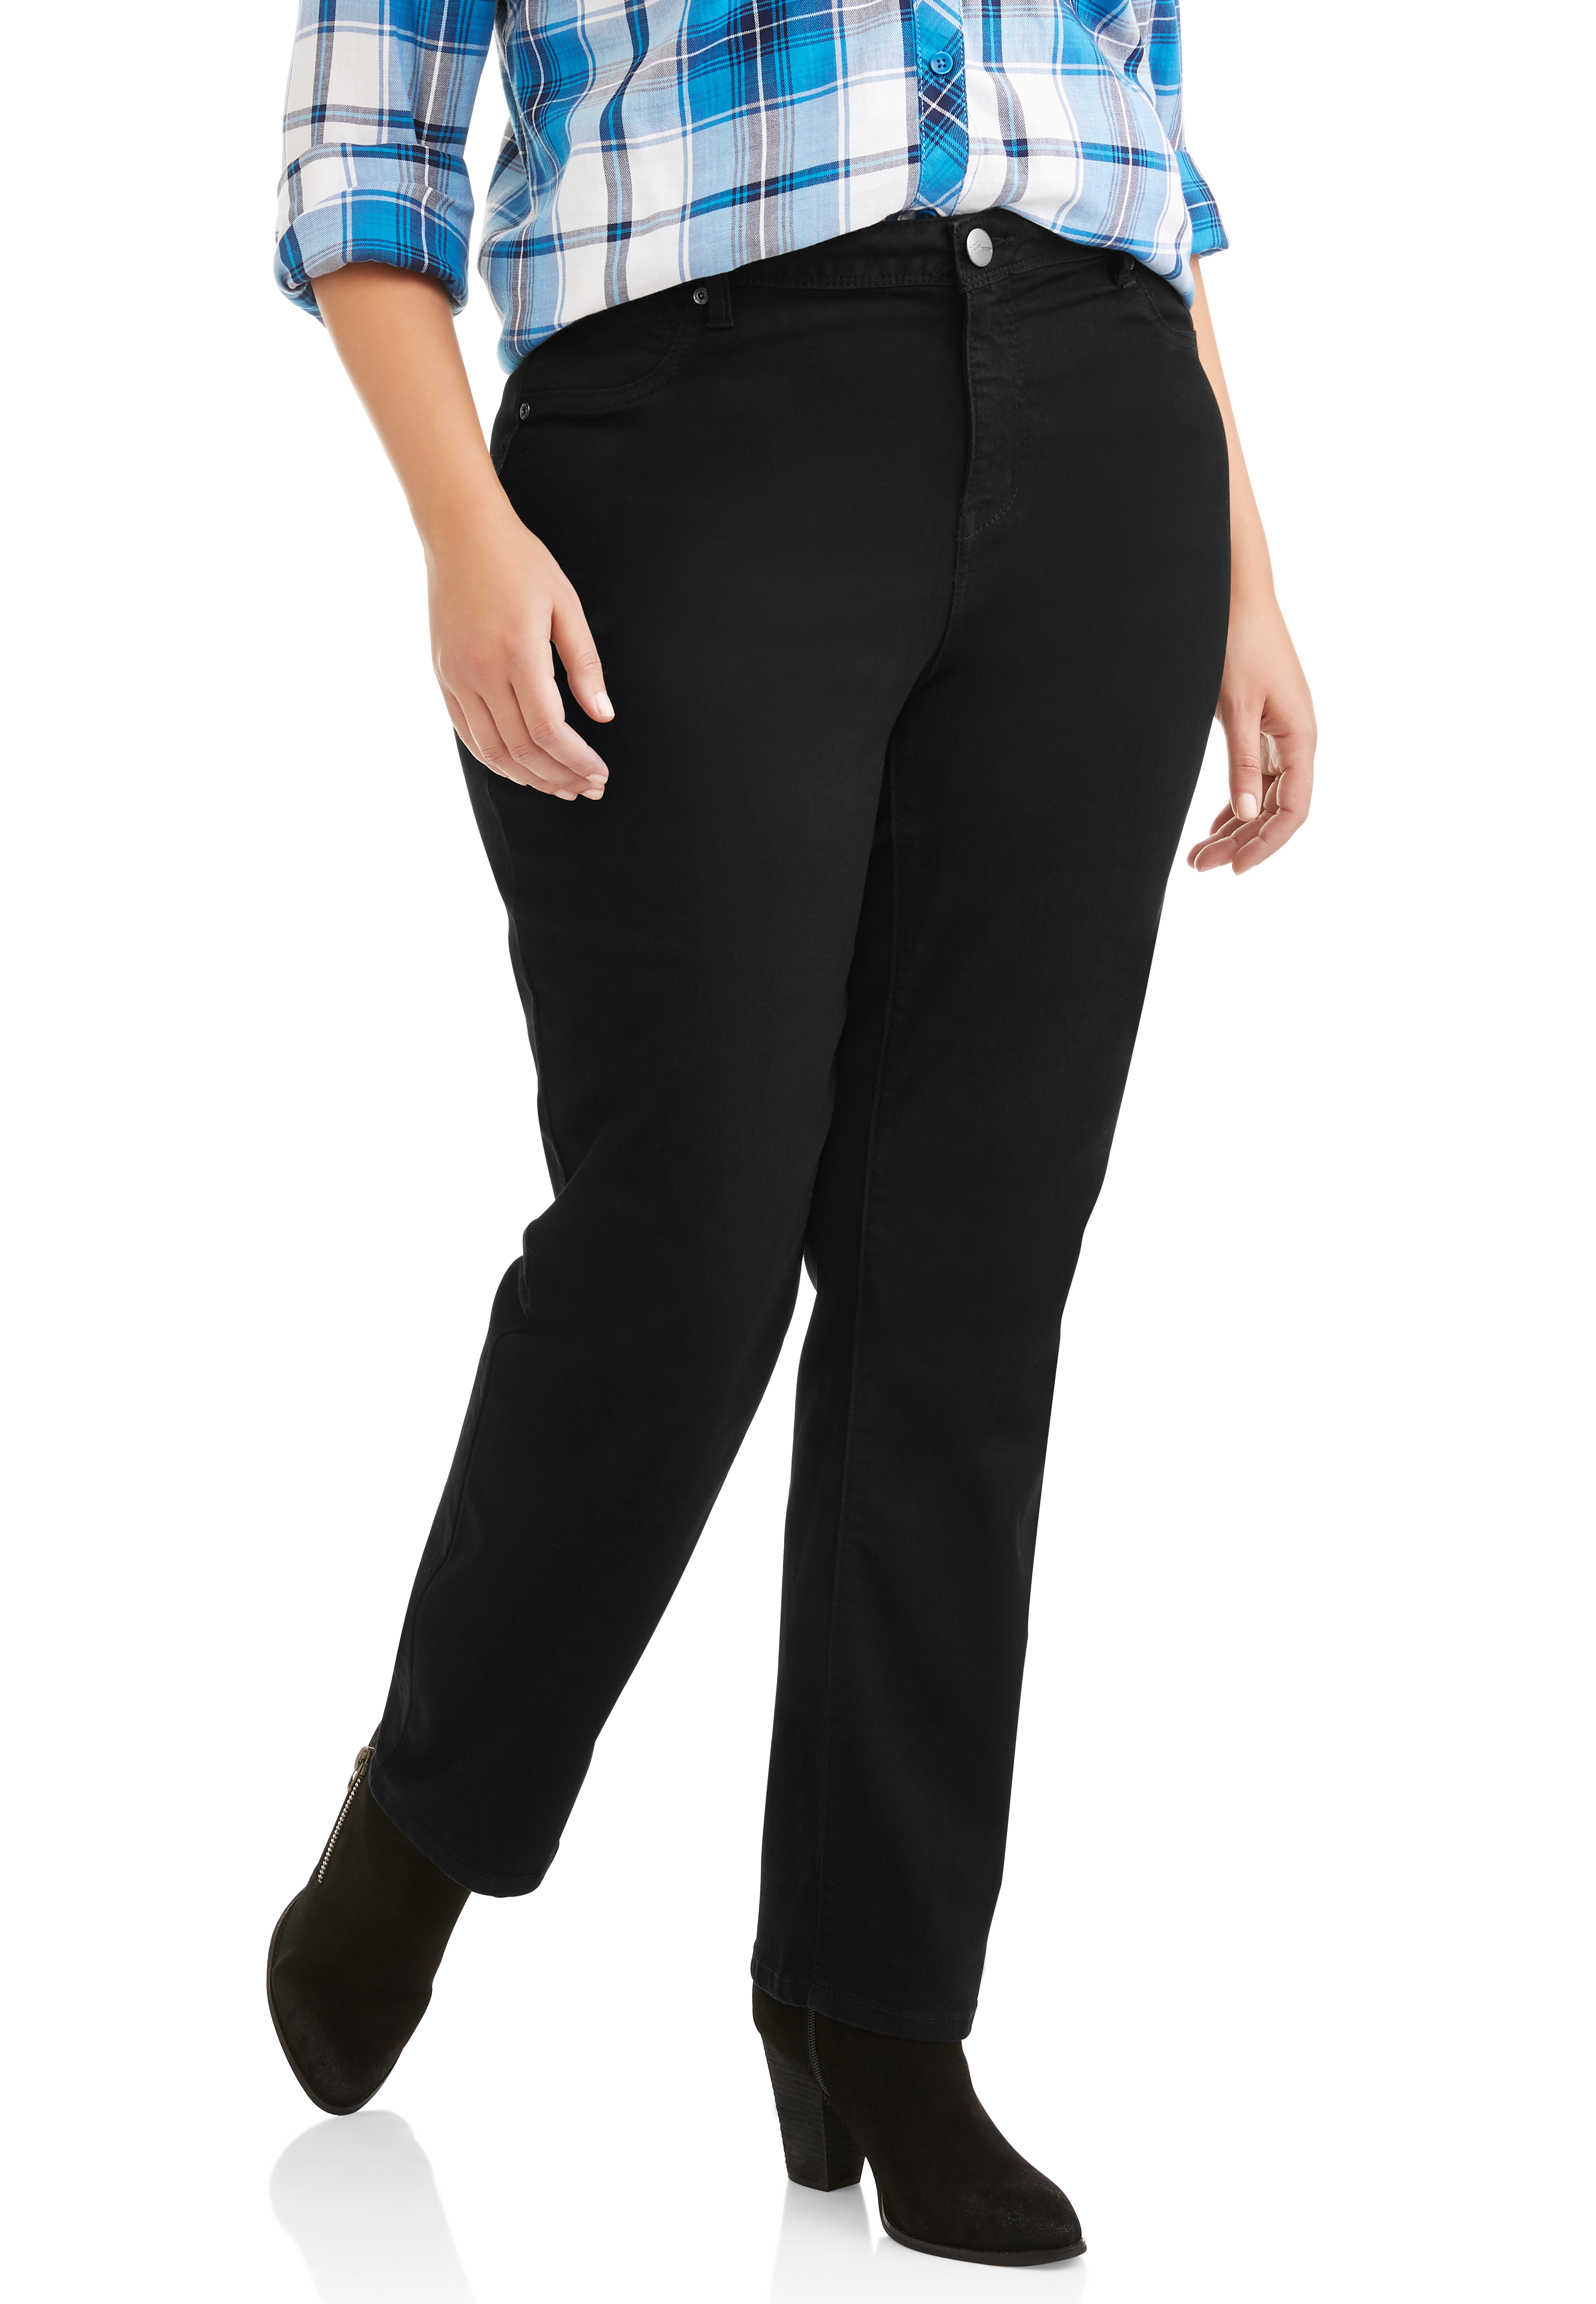 A3 Denim Women's Plus Curve-Enhancing Straight Leg Jeans